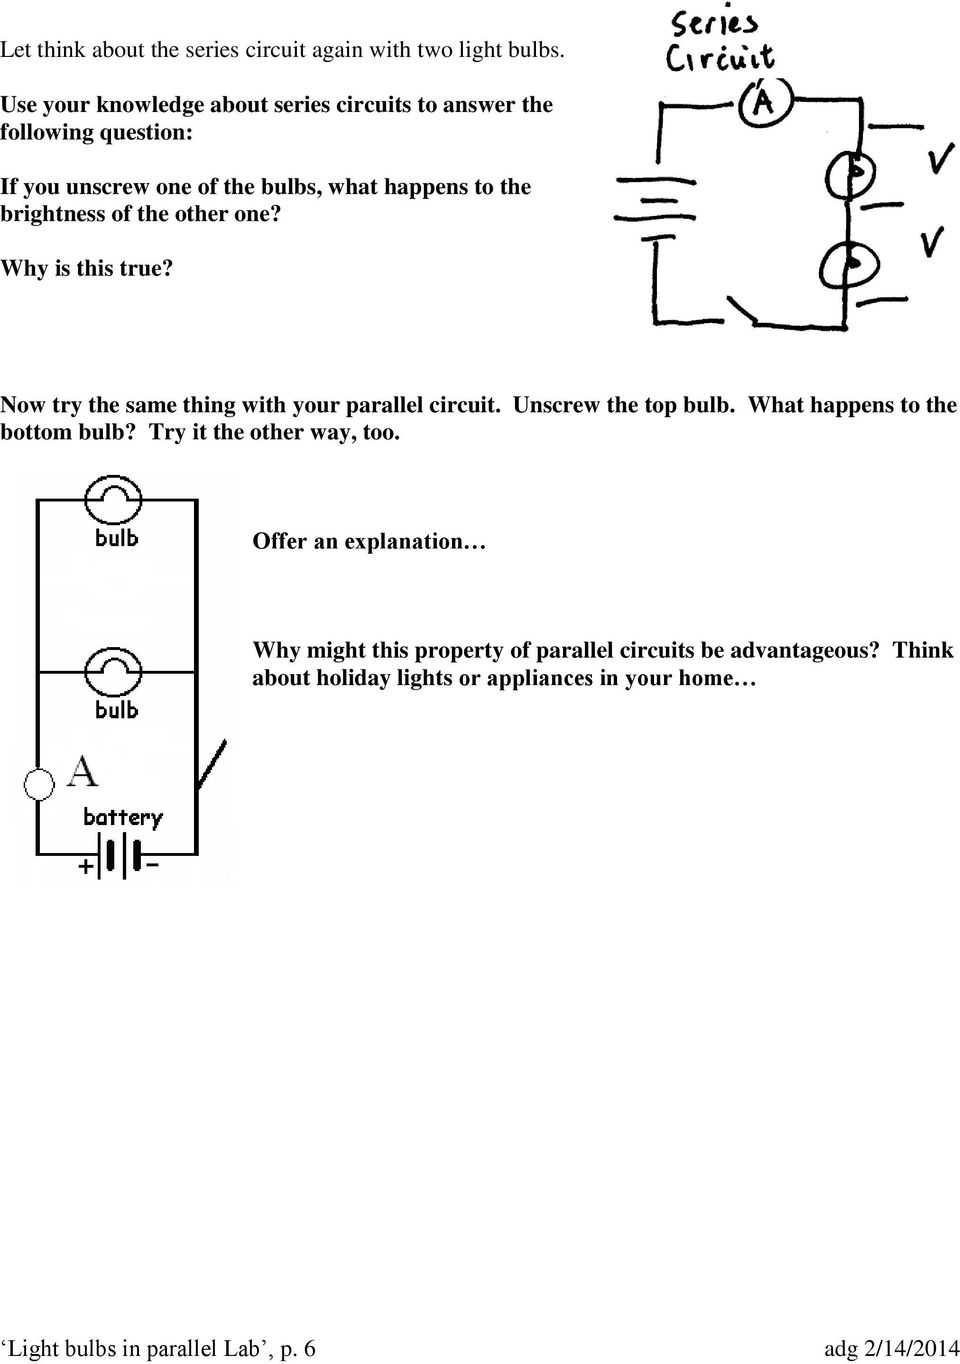 Light Bulbs In Parallel Circuits Pdf A Circuit With Battery Each Lightbulb The Of Other One Why Is This True Now Try Same Thing